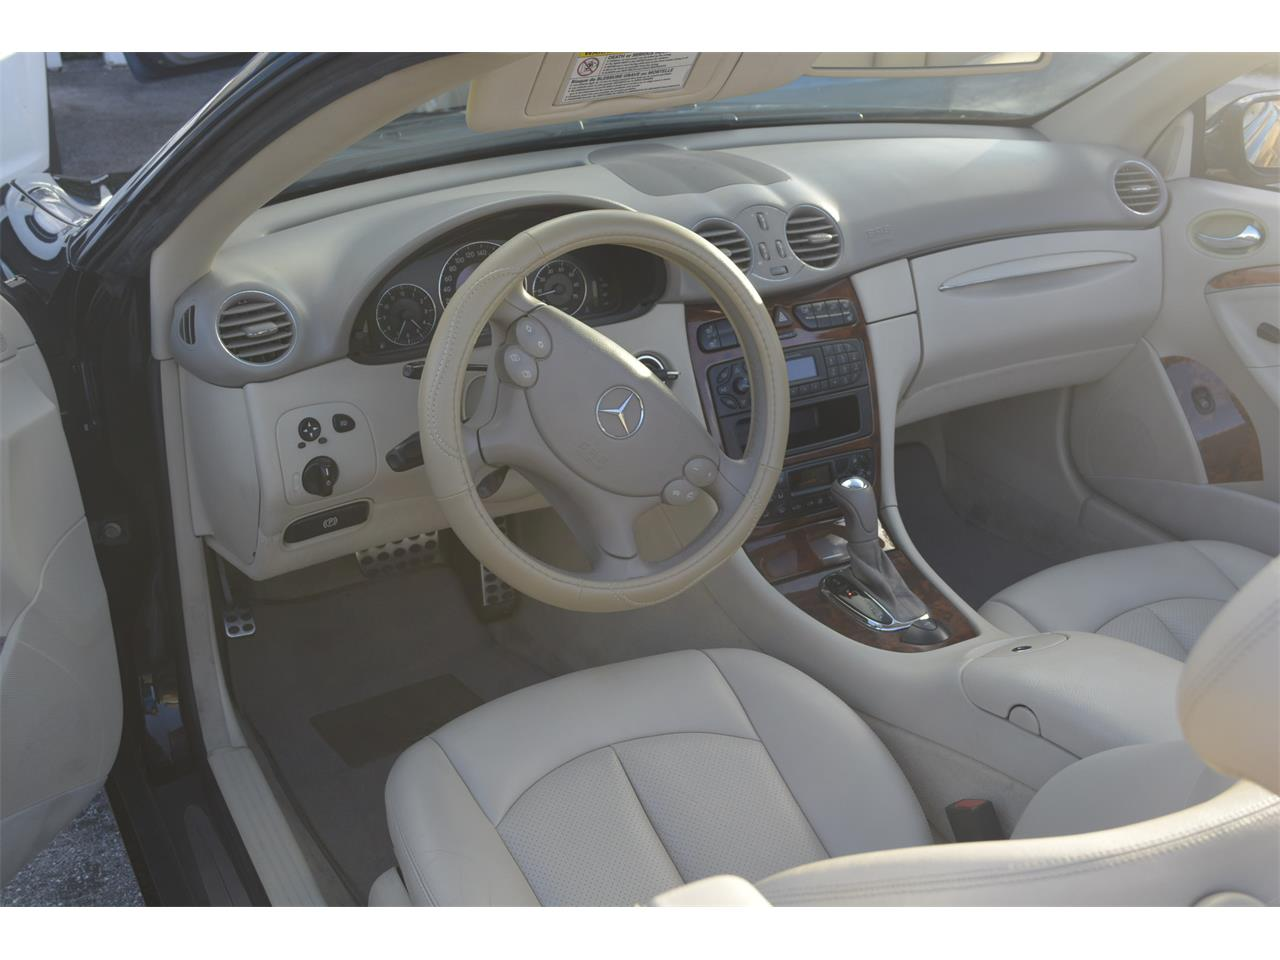 Large Picture of 2004 CLK320 located in Boca Raton Florida - $8,850.00 Offered by Show Cars of Boca Raton - MUDS